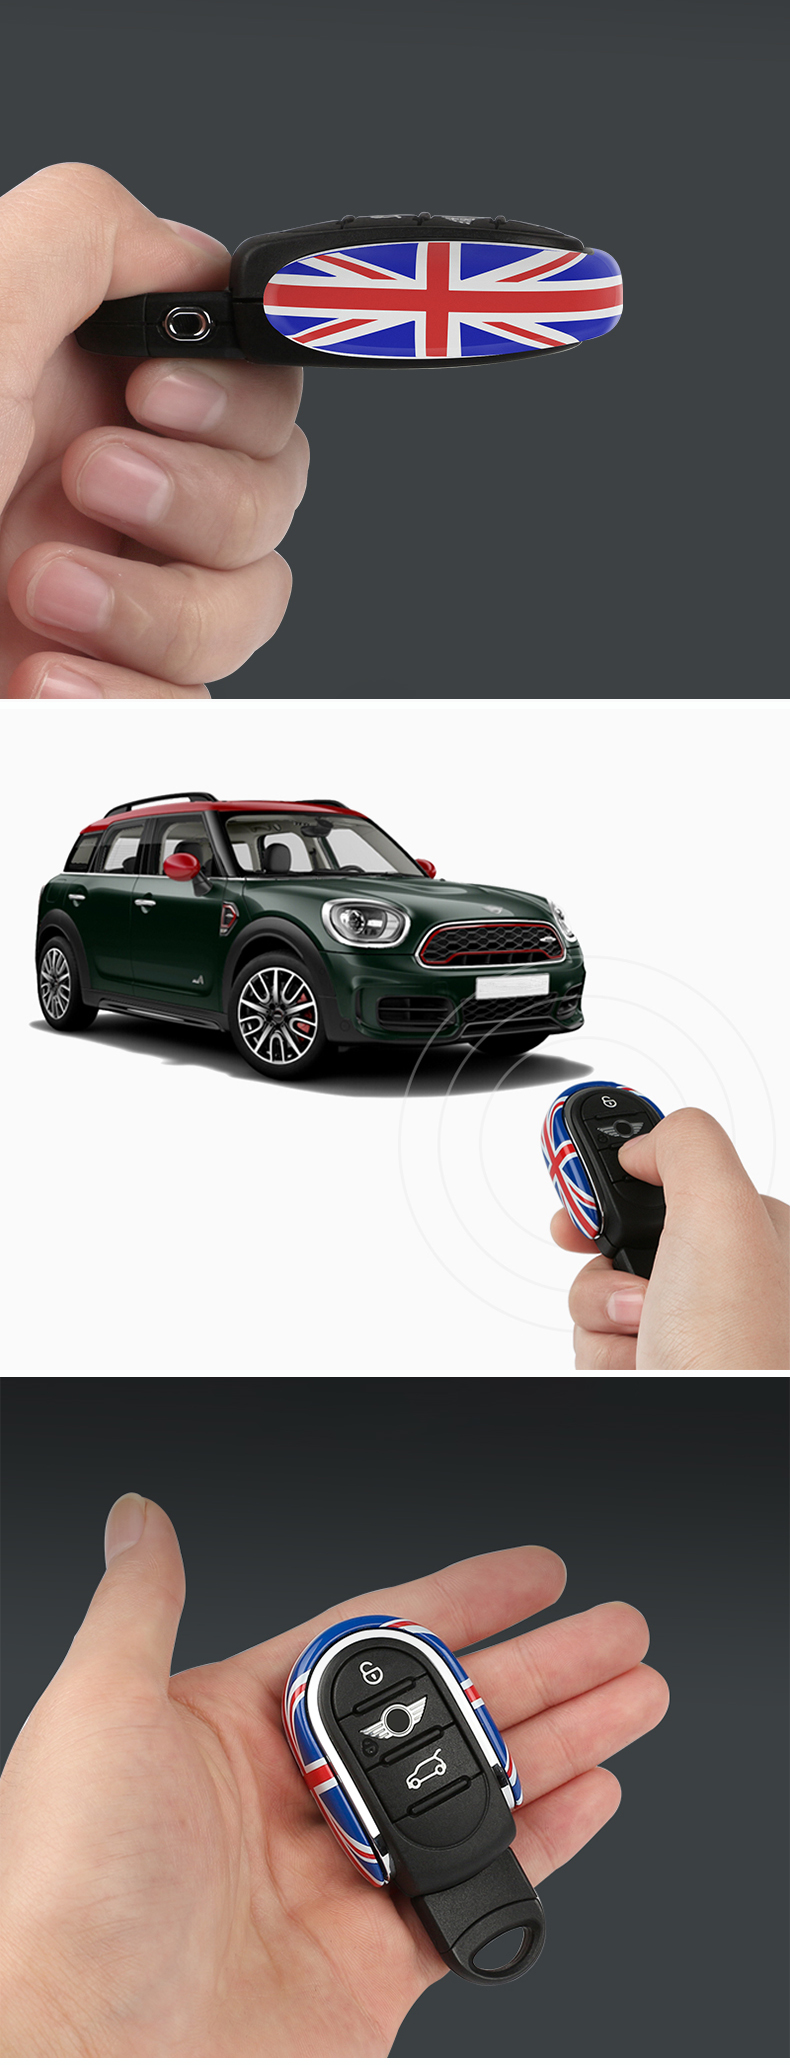 YLC Silicone Car Key Cover Protection Case for BMW Mini Cooper ONE S JCW F54 F55 F56 F57 F60 Clubman Countryman 3 Button Smart Key Navy Blue